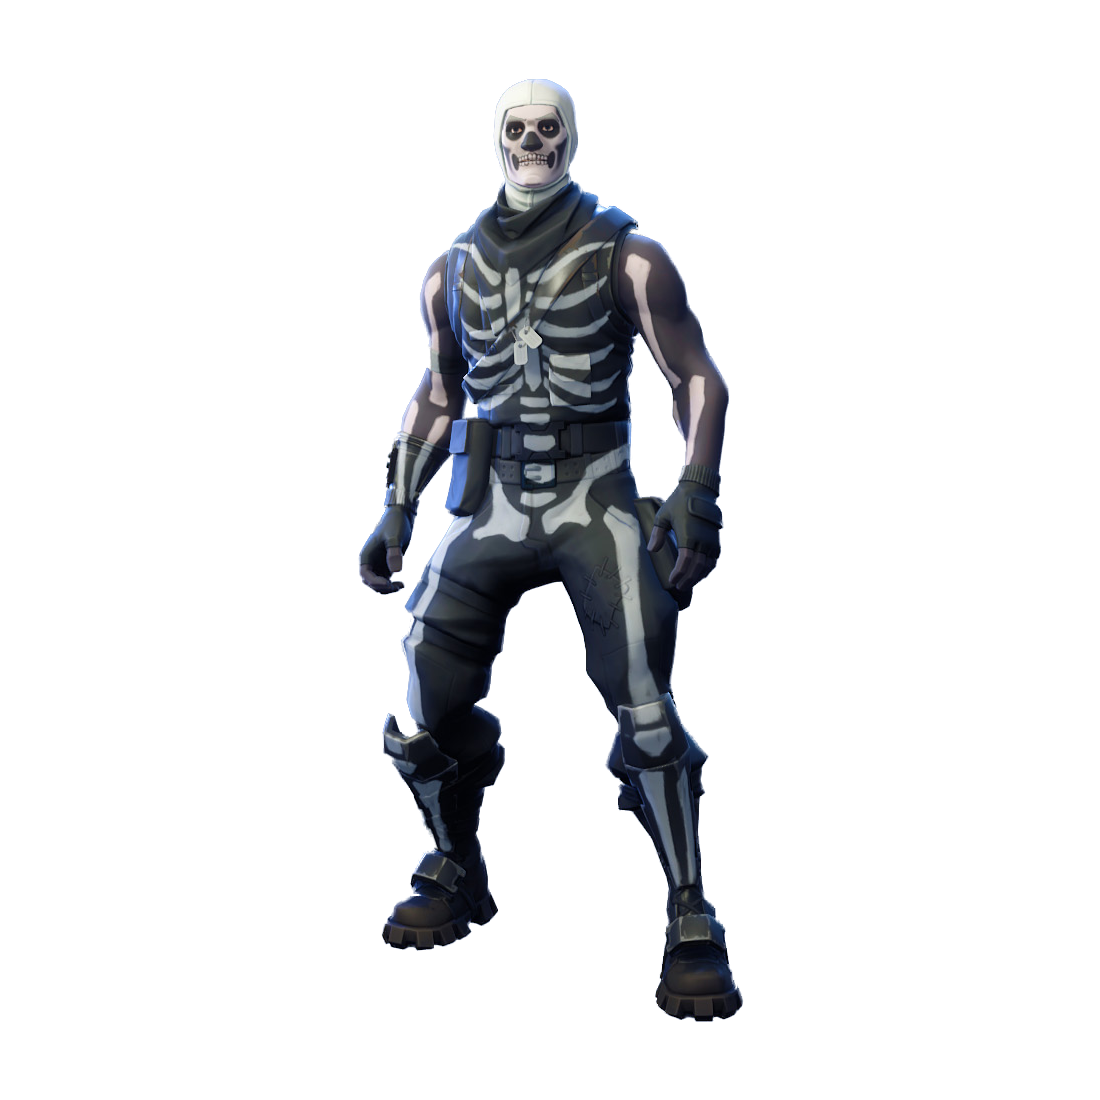 Skull trooper clipart real life. Fortnite png image purepng